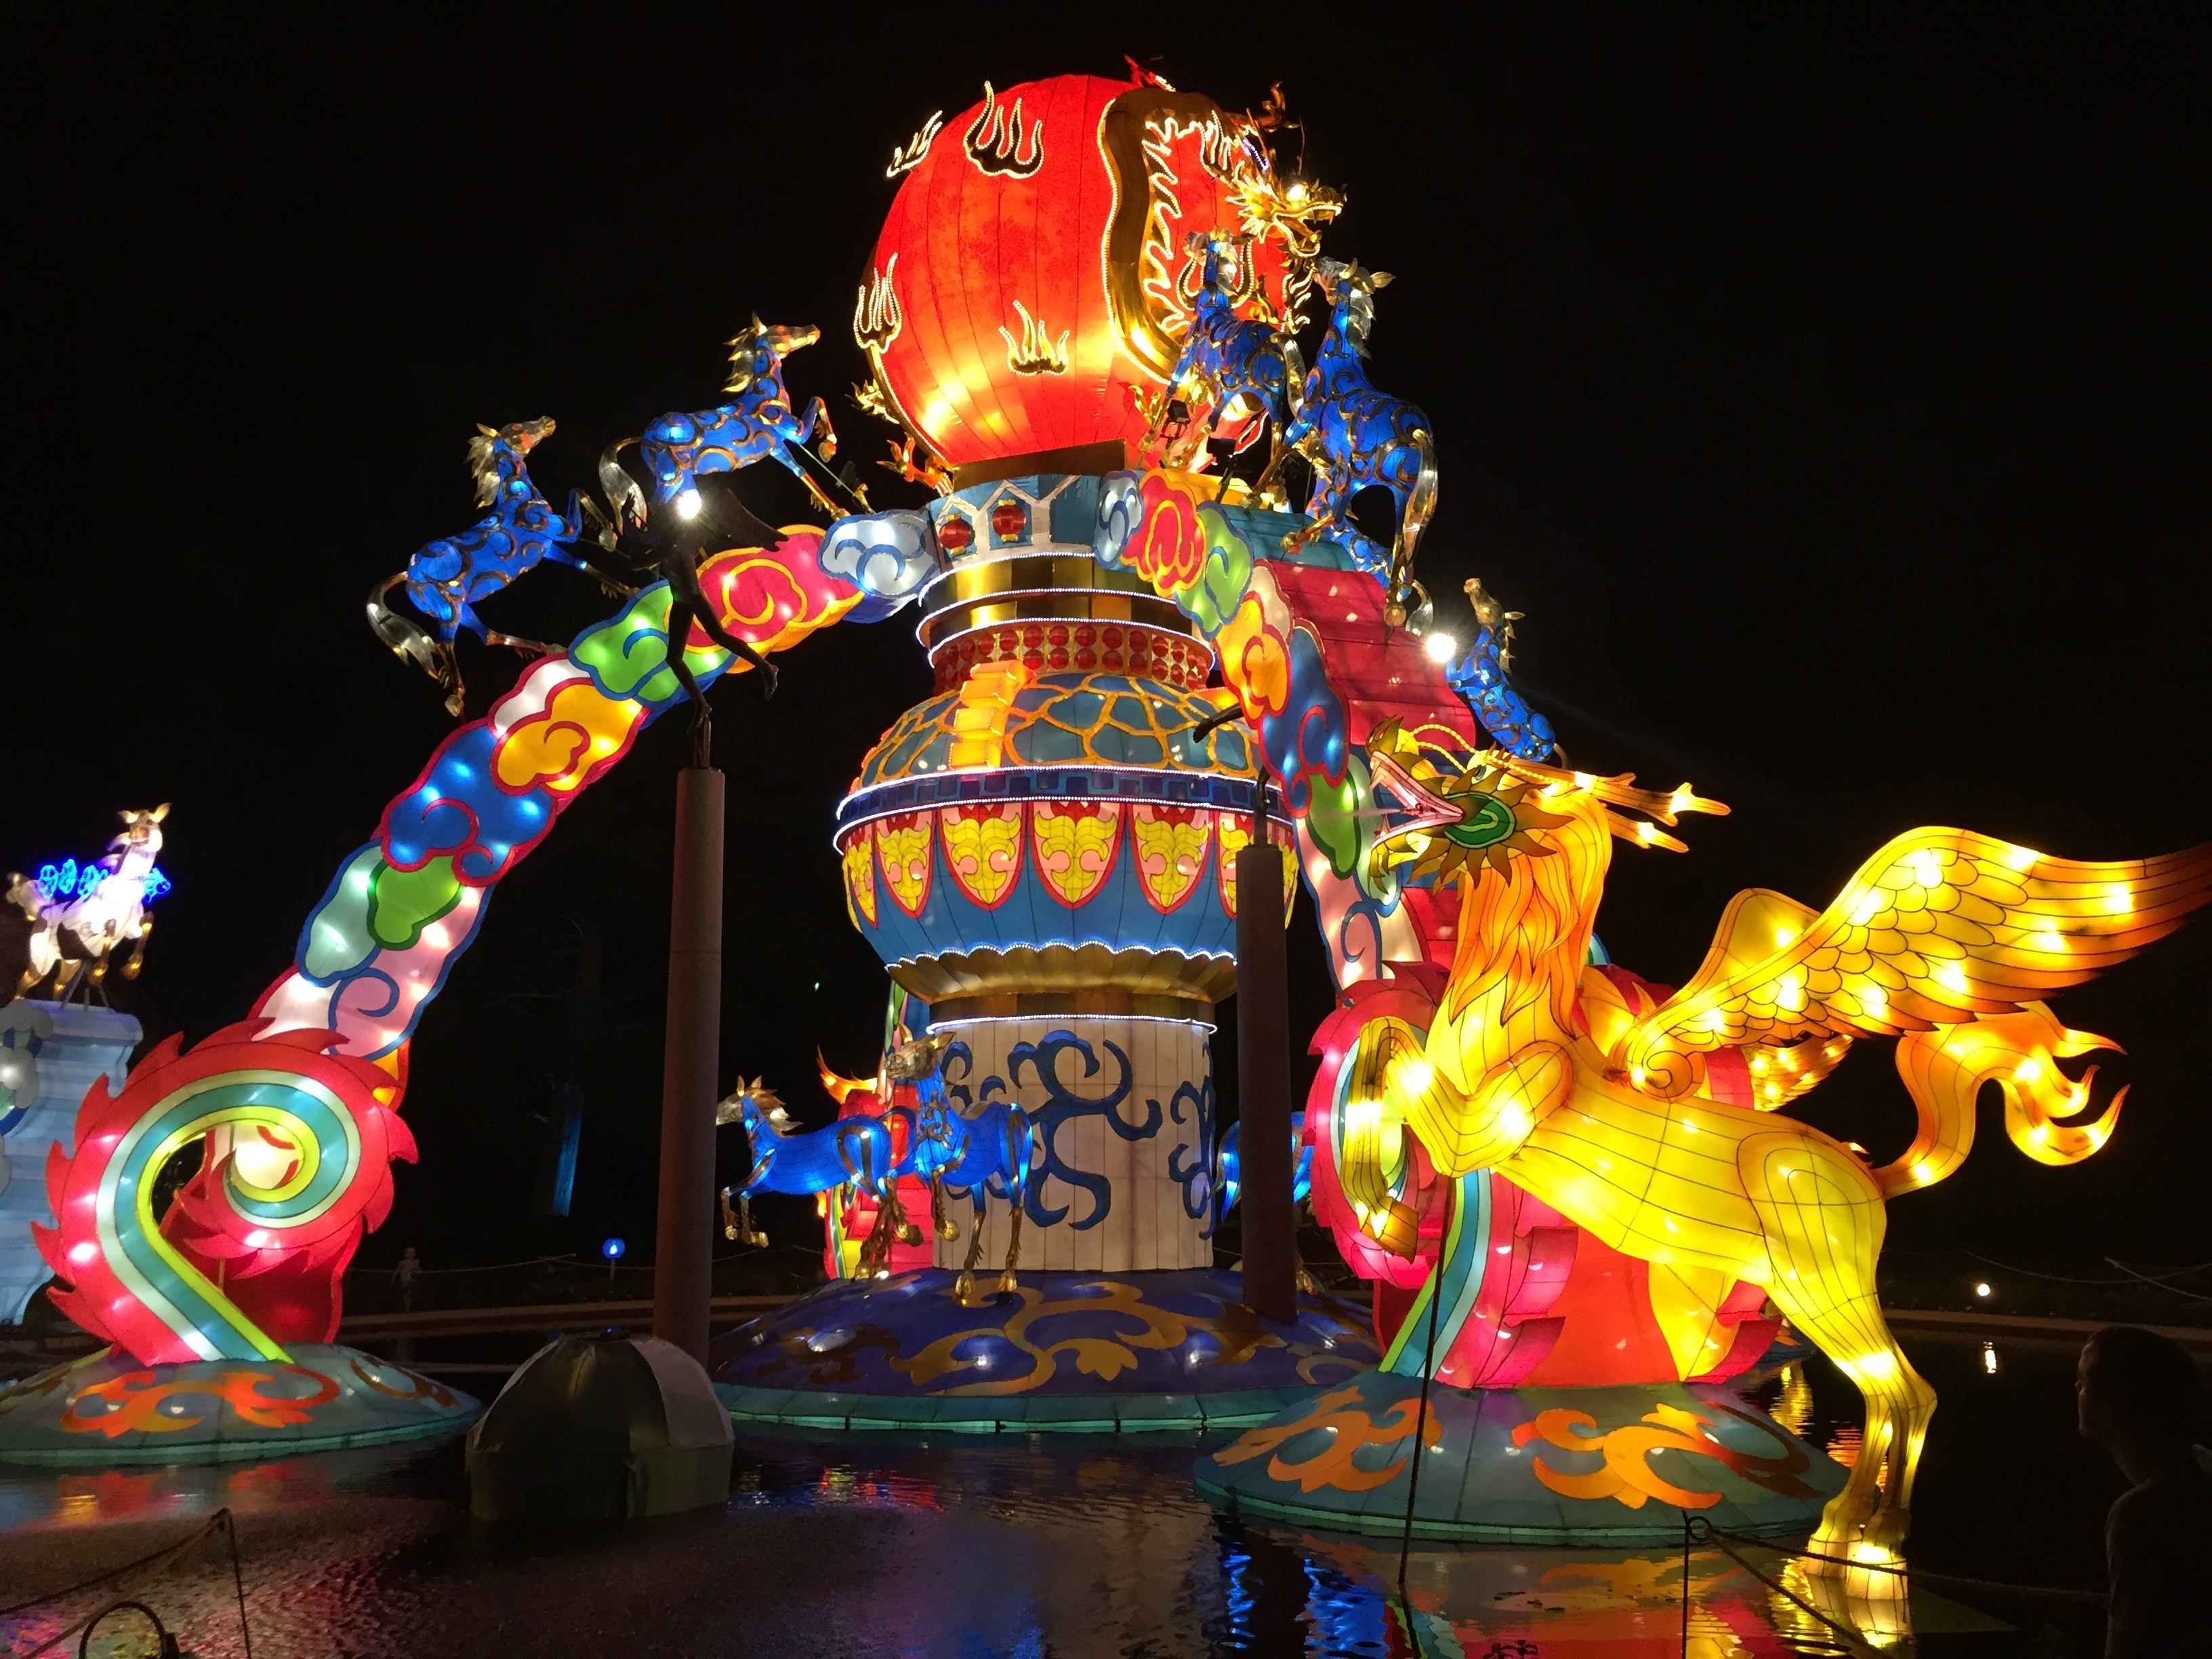 Most Current Free Images : Outdoor, Celebration, Golden, Red, Amusement Park For Outdoor Oriental Lanterns (View 6 of 20)